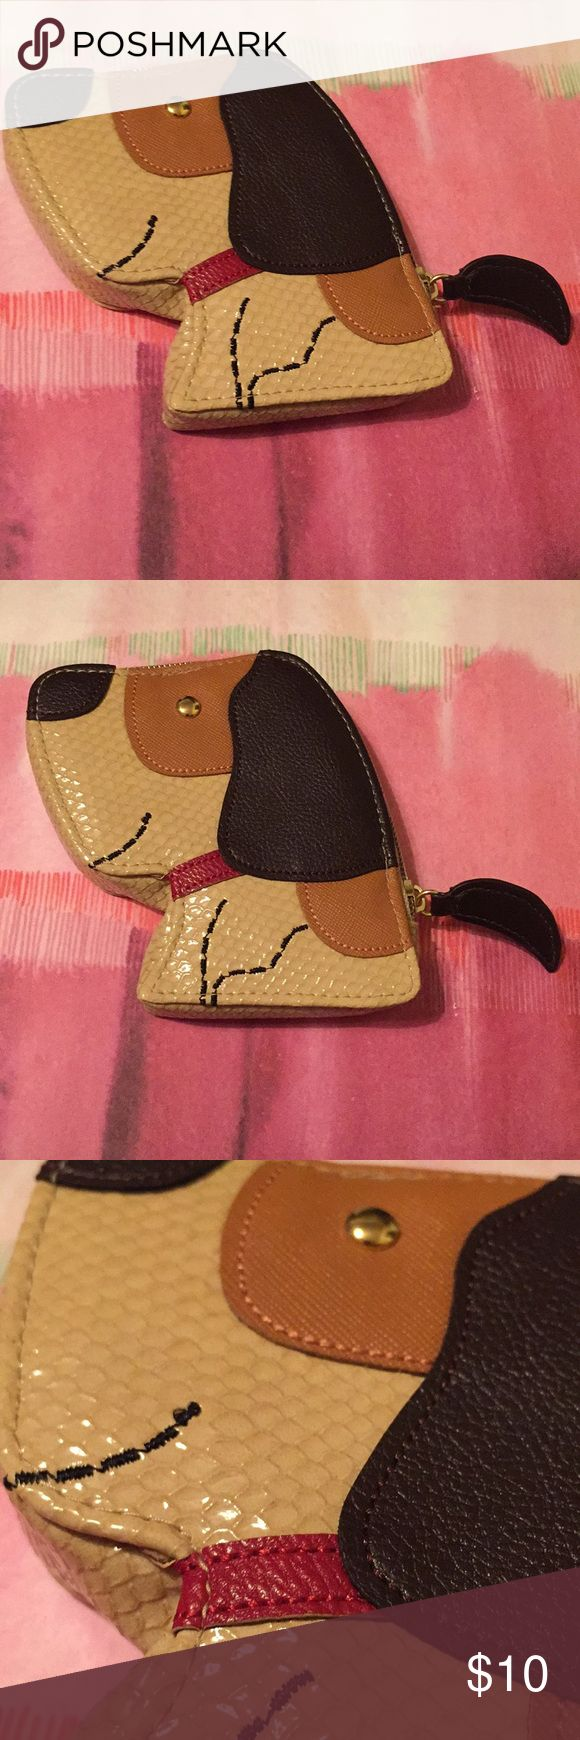 NWOT Dressbarn dog puppy face coin purse 🎶🎵how much is that doggie in the window🎵🎶 Suuuper cute puppy dog coin purse! Looks kind of like a hound or a beagle 🐶💕 snakeskin like and a variety of patterned leather like materials make up this must have! Red collar, gold button eye, oh and the tail is the zipper! 😍 this one is for all the proud dog mommas! Similar to: Kate Spade, Coach, Betsey Johnson. Sand, tan, and chocolate in color. Dress Barn Bags Wallets